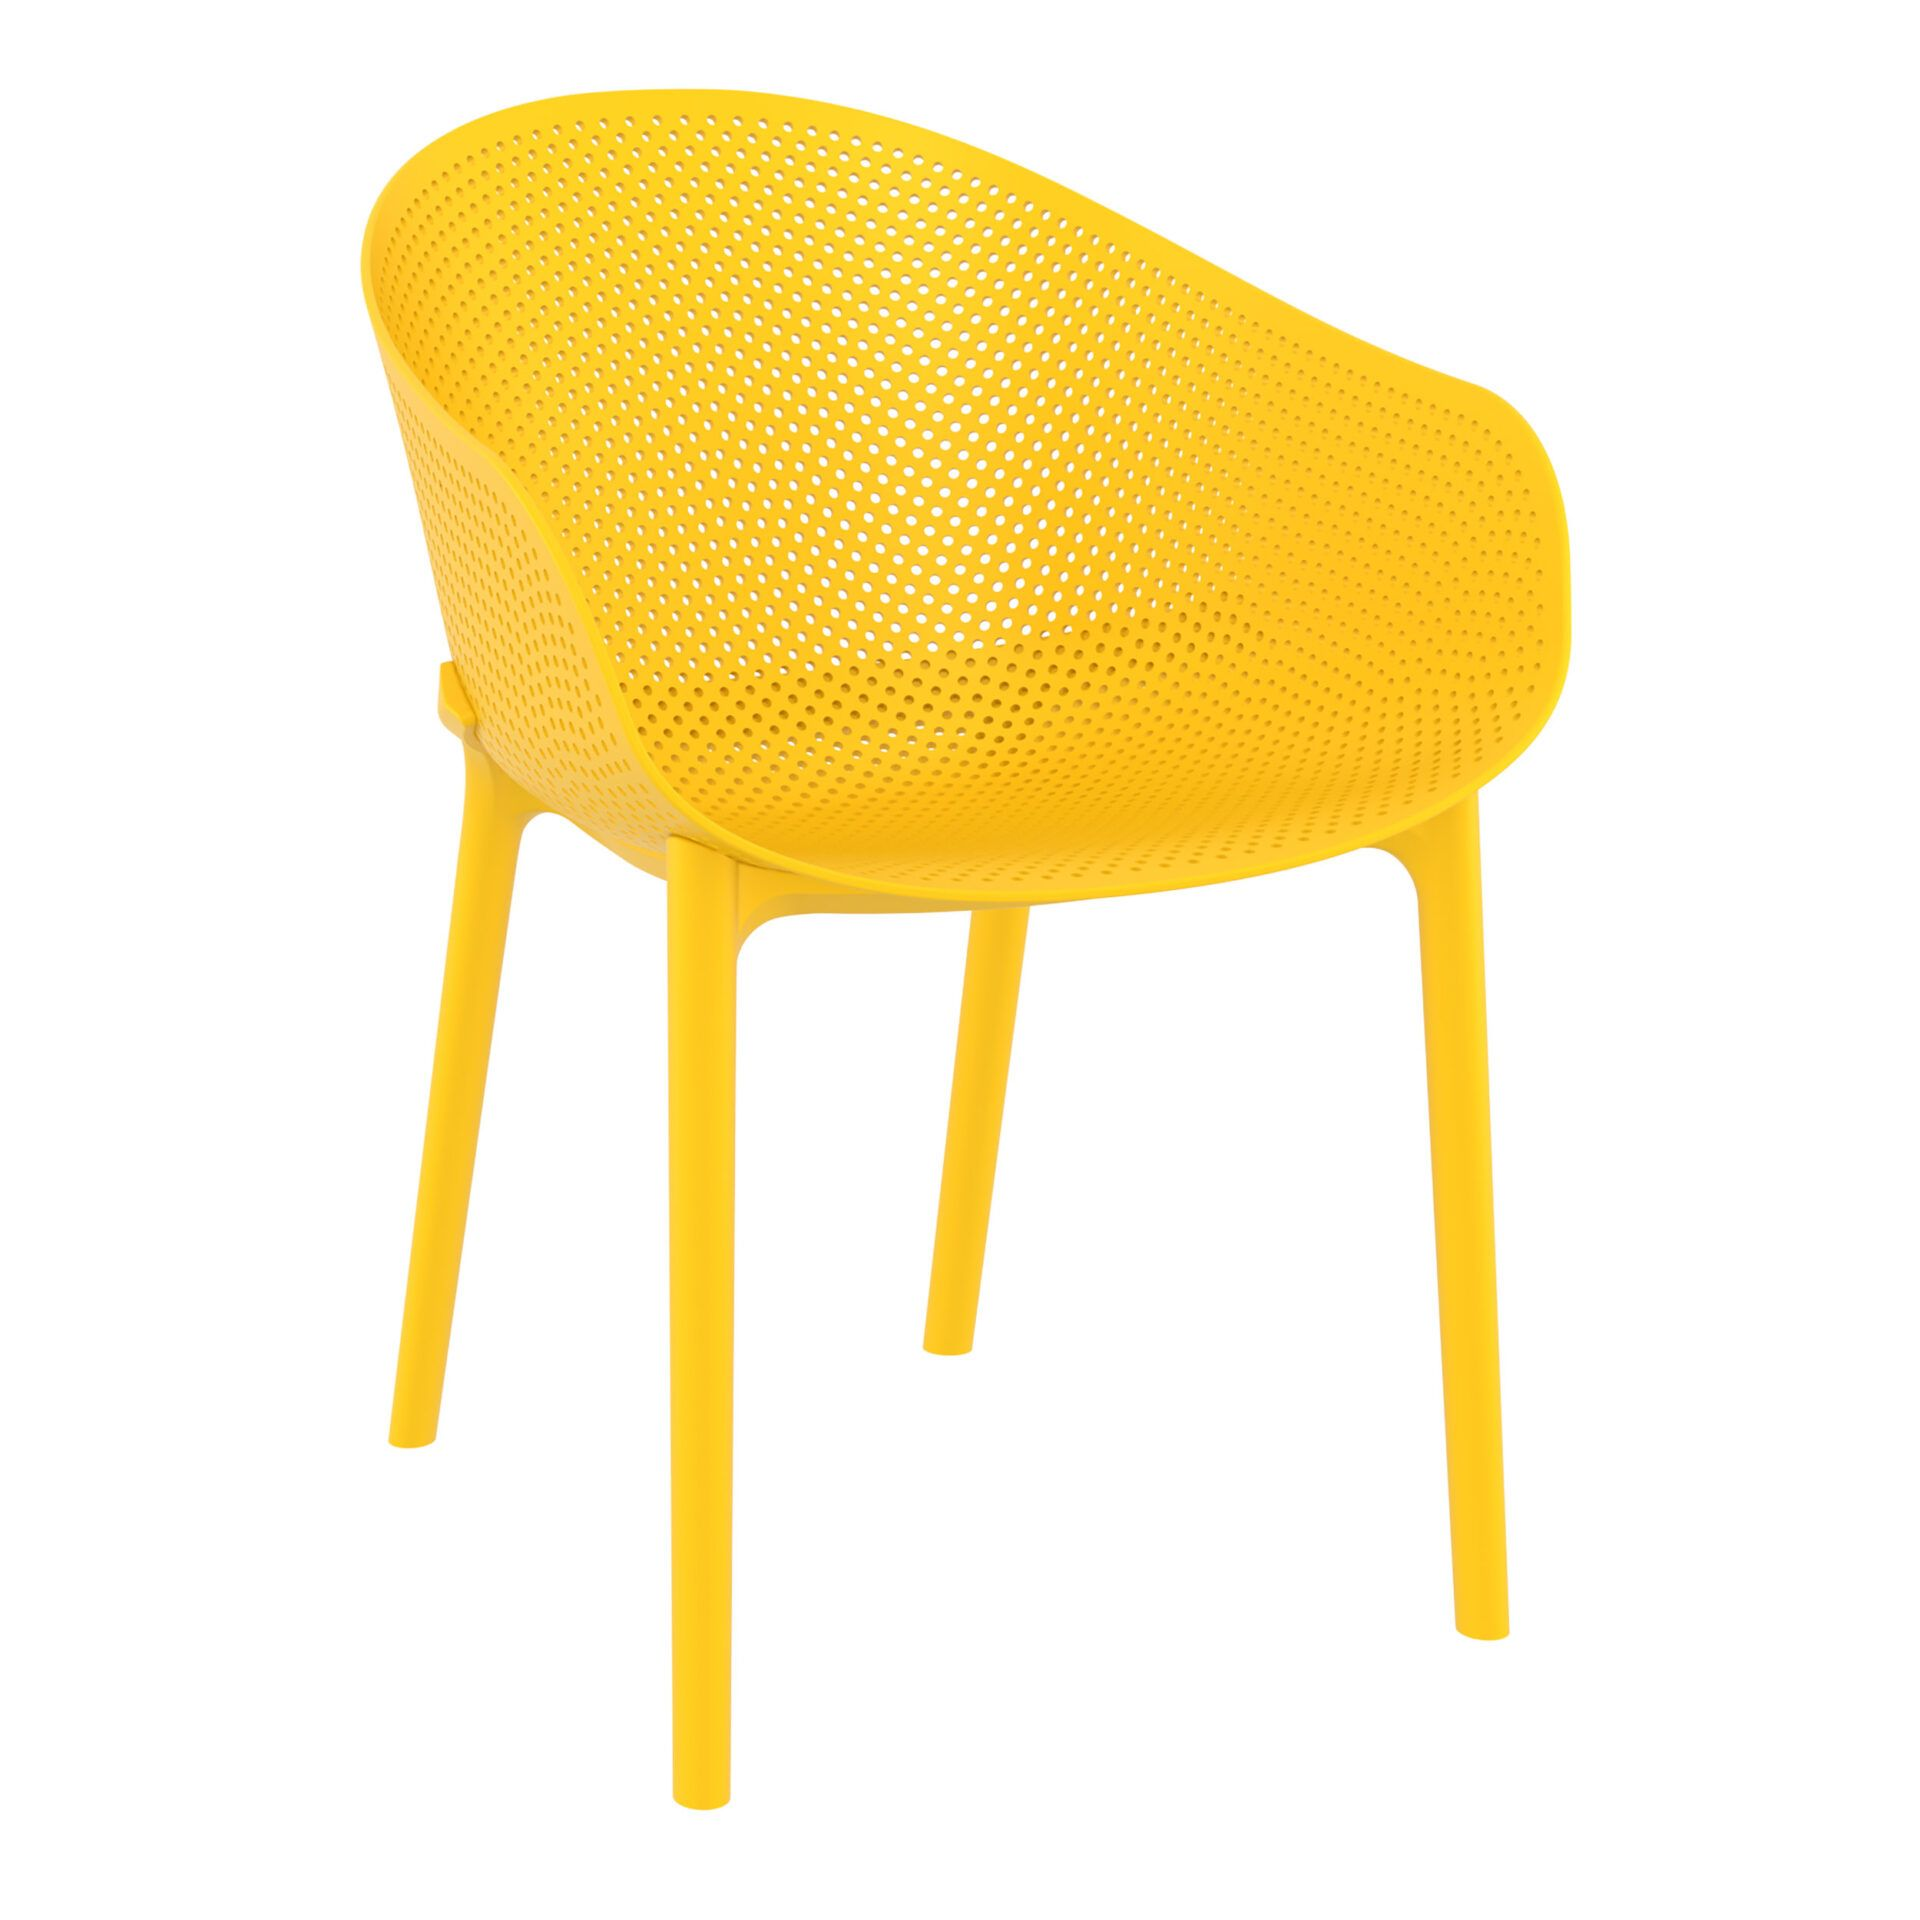 outdoor seating polypropylene sky chair yellow front side